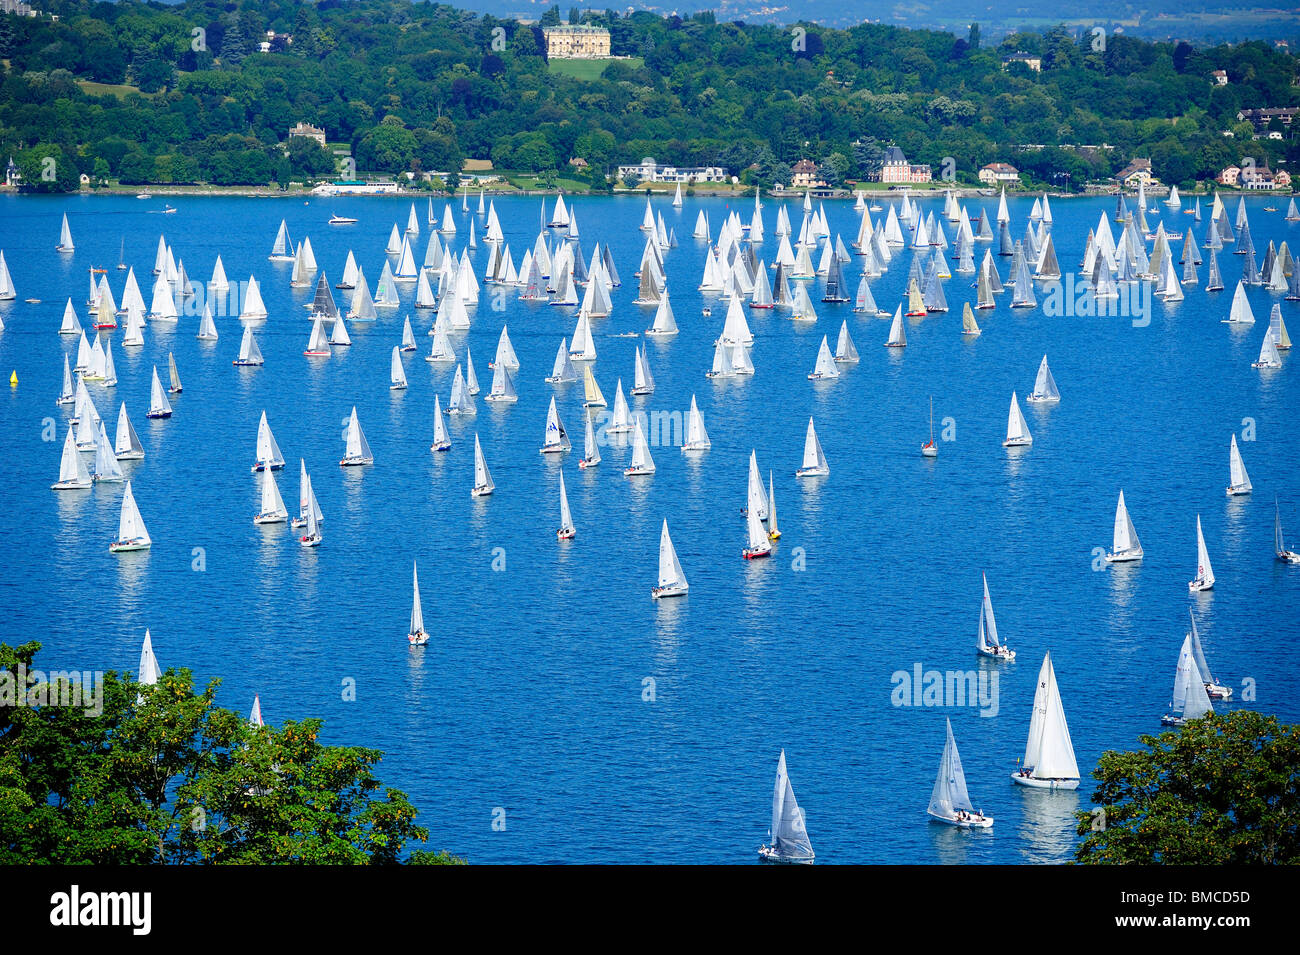 The start of the annual Bol d'Or sailing race on Lac Léman, Switzerland, viewed from a high viewpoint at - Stock Image